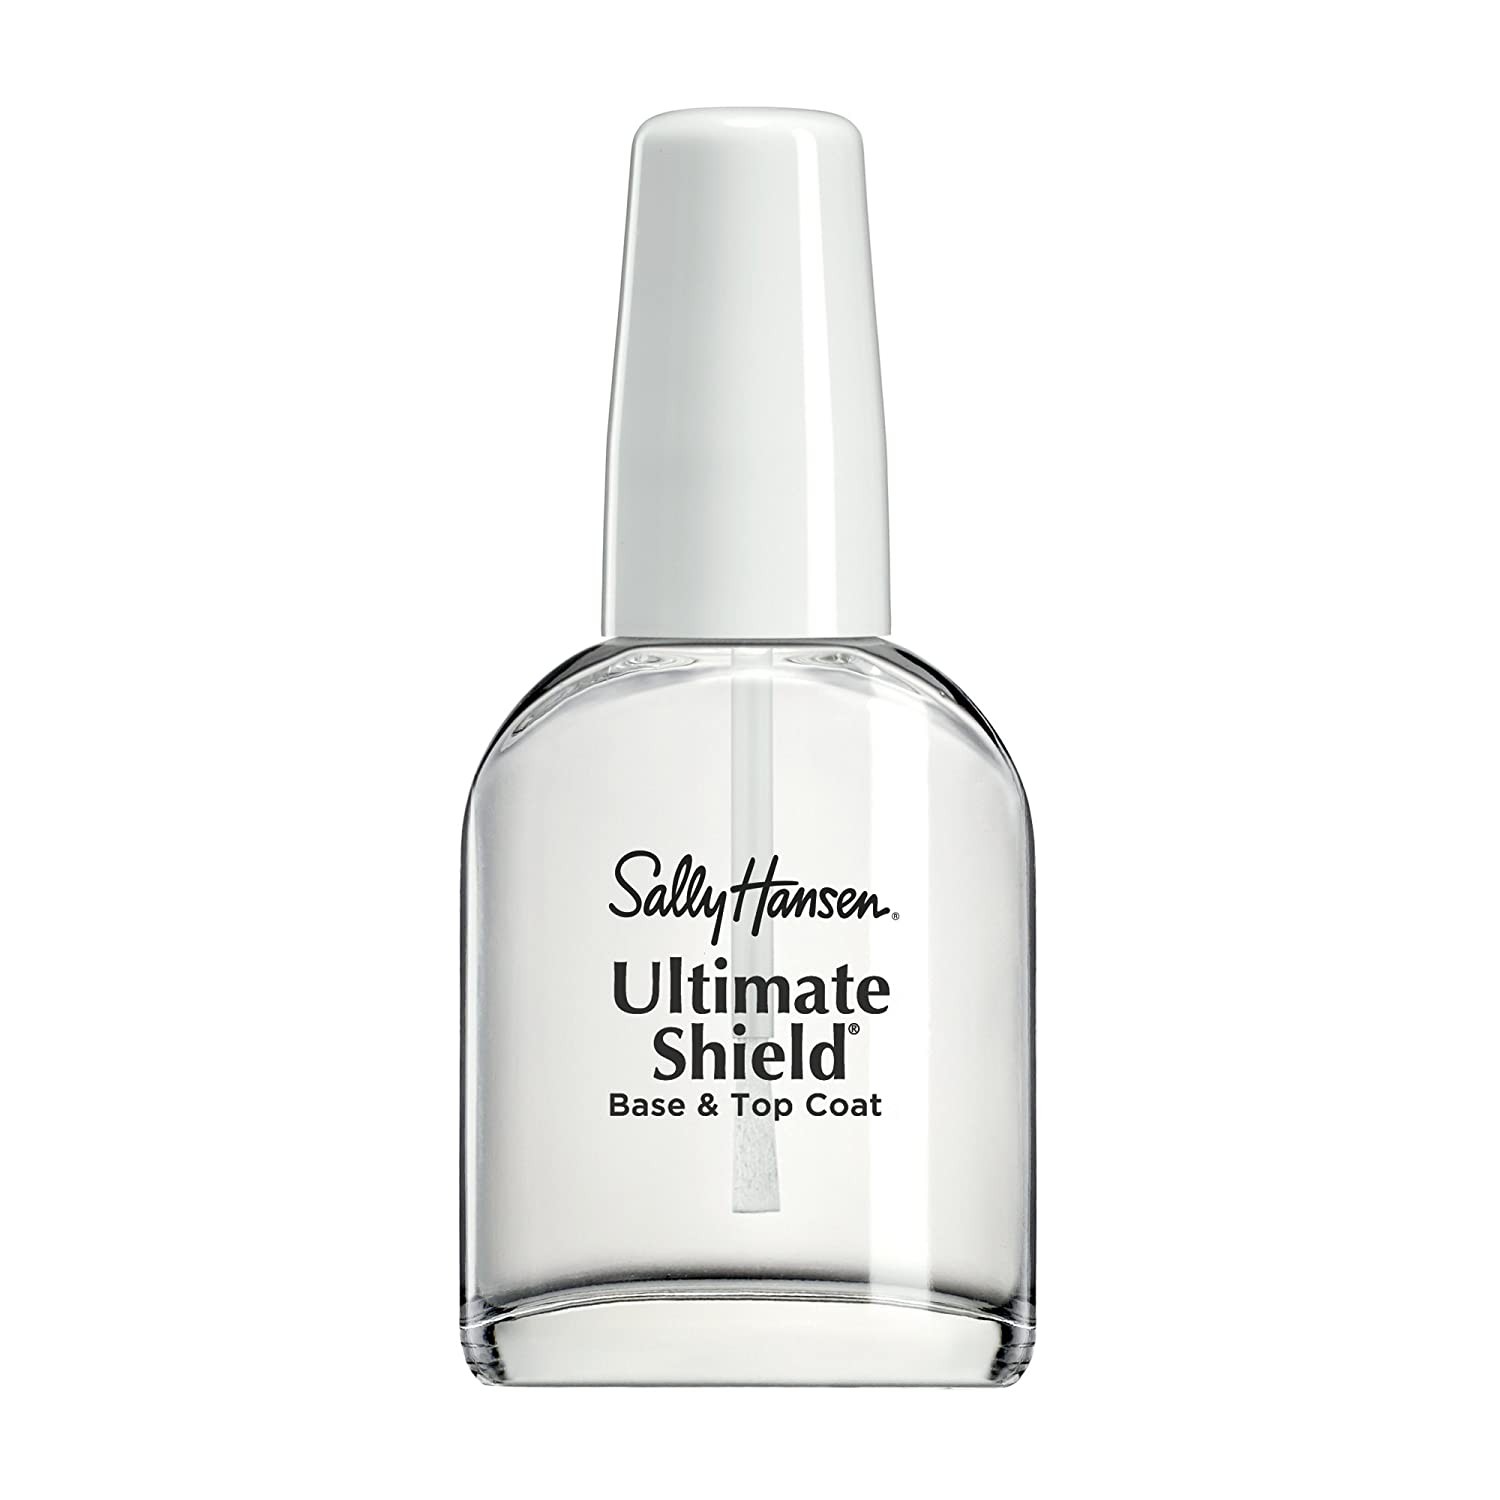 Sally Hansen - Ultimate Shield Base & Top Coat Coty 30003375000